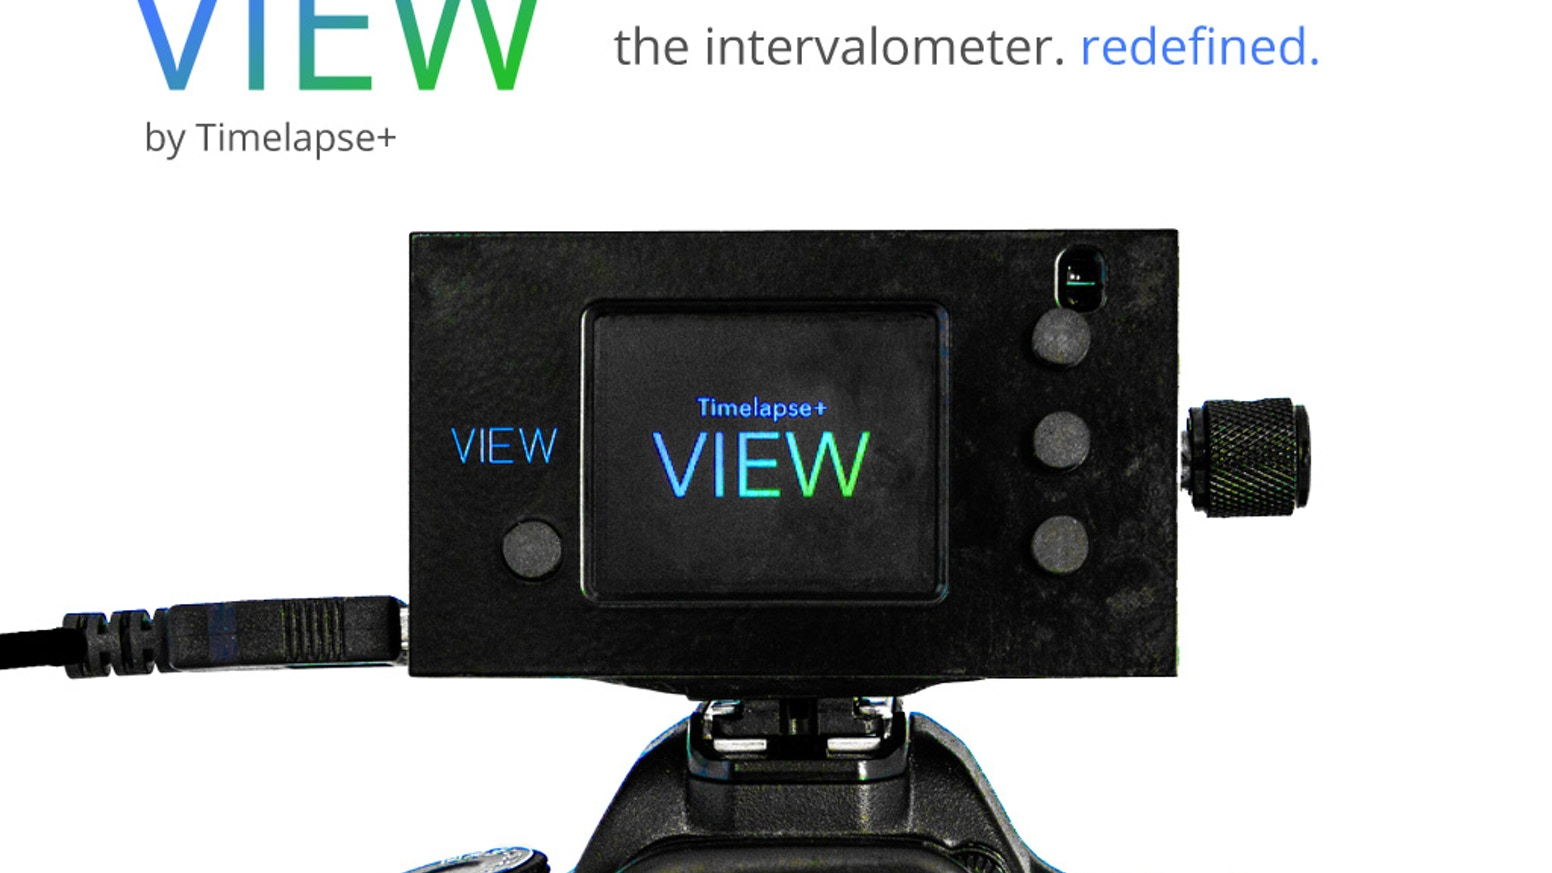 View Intervalometer Auto Ramp Instant Preview Wifi Remote By